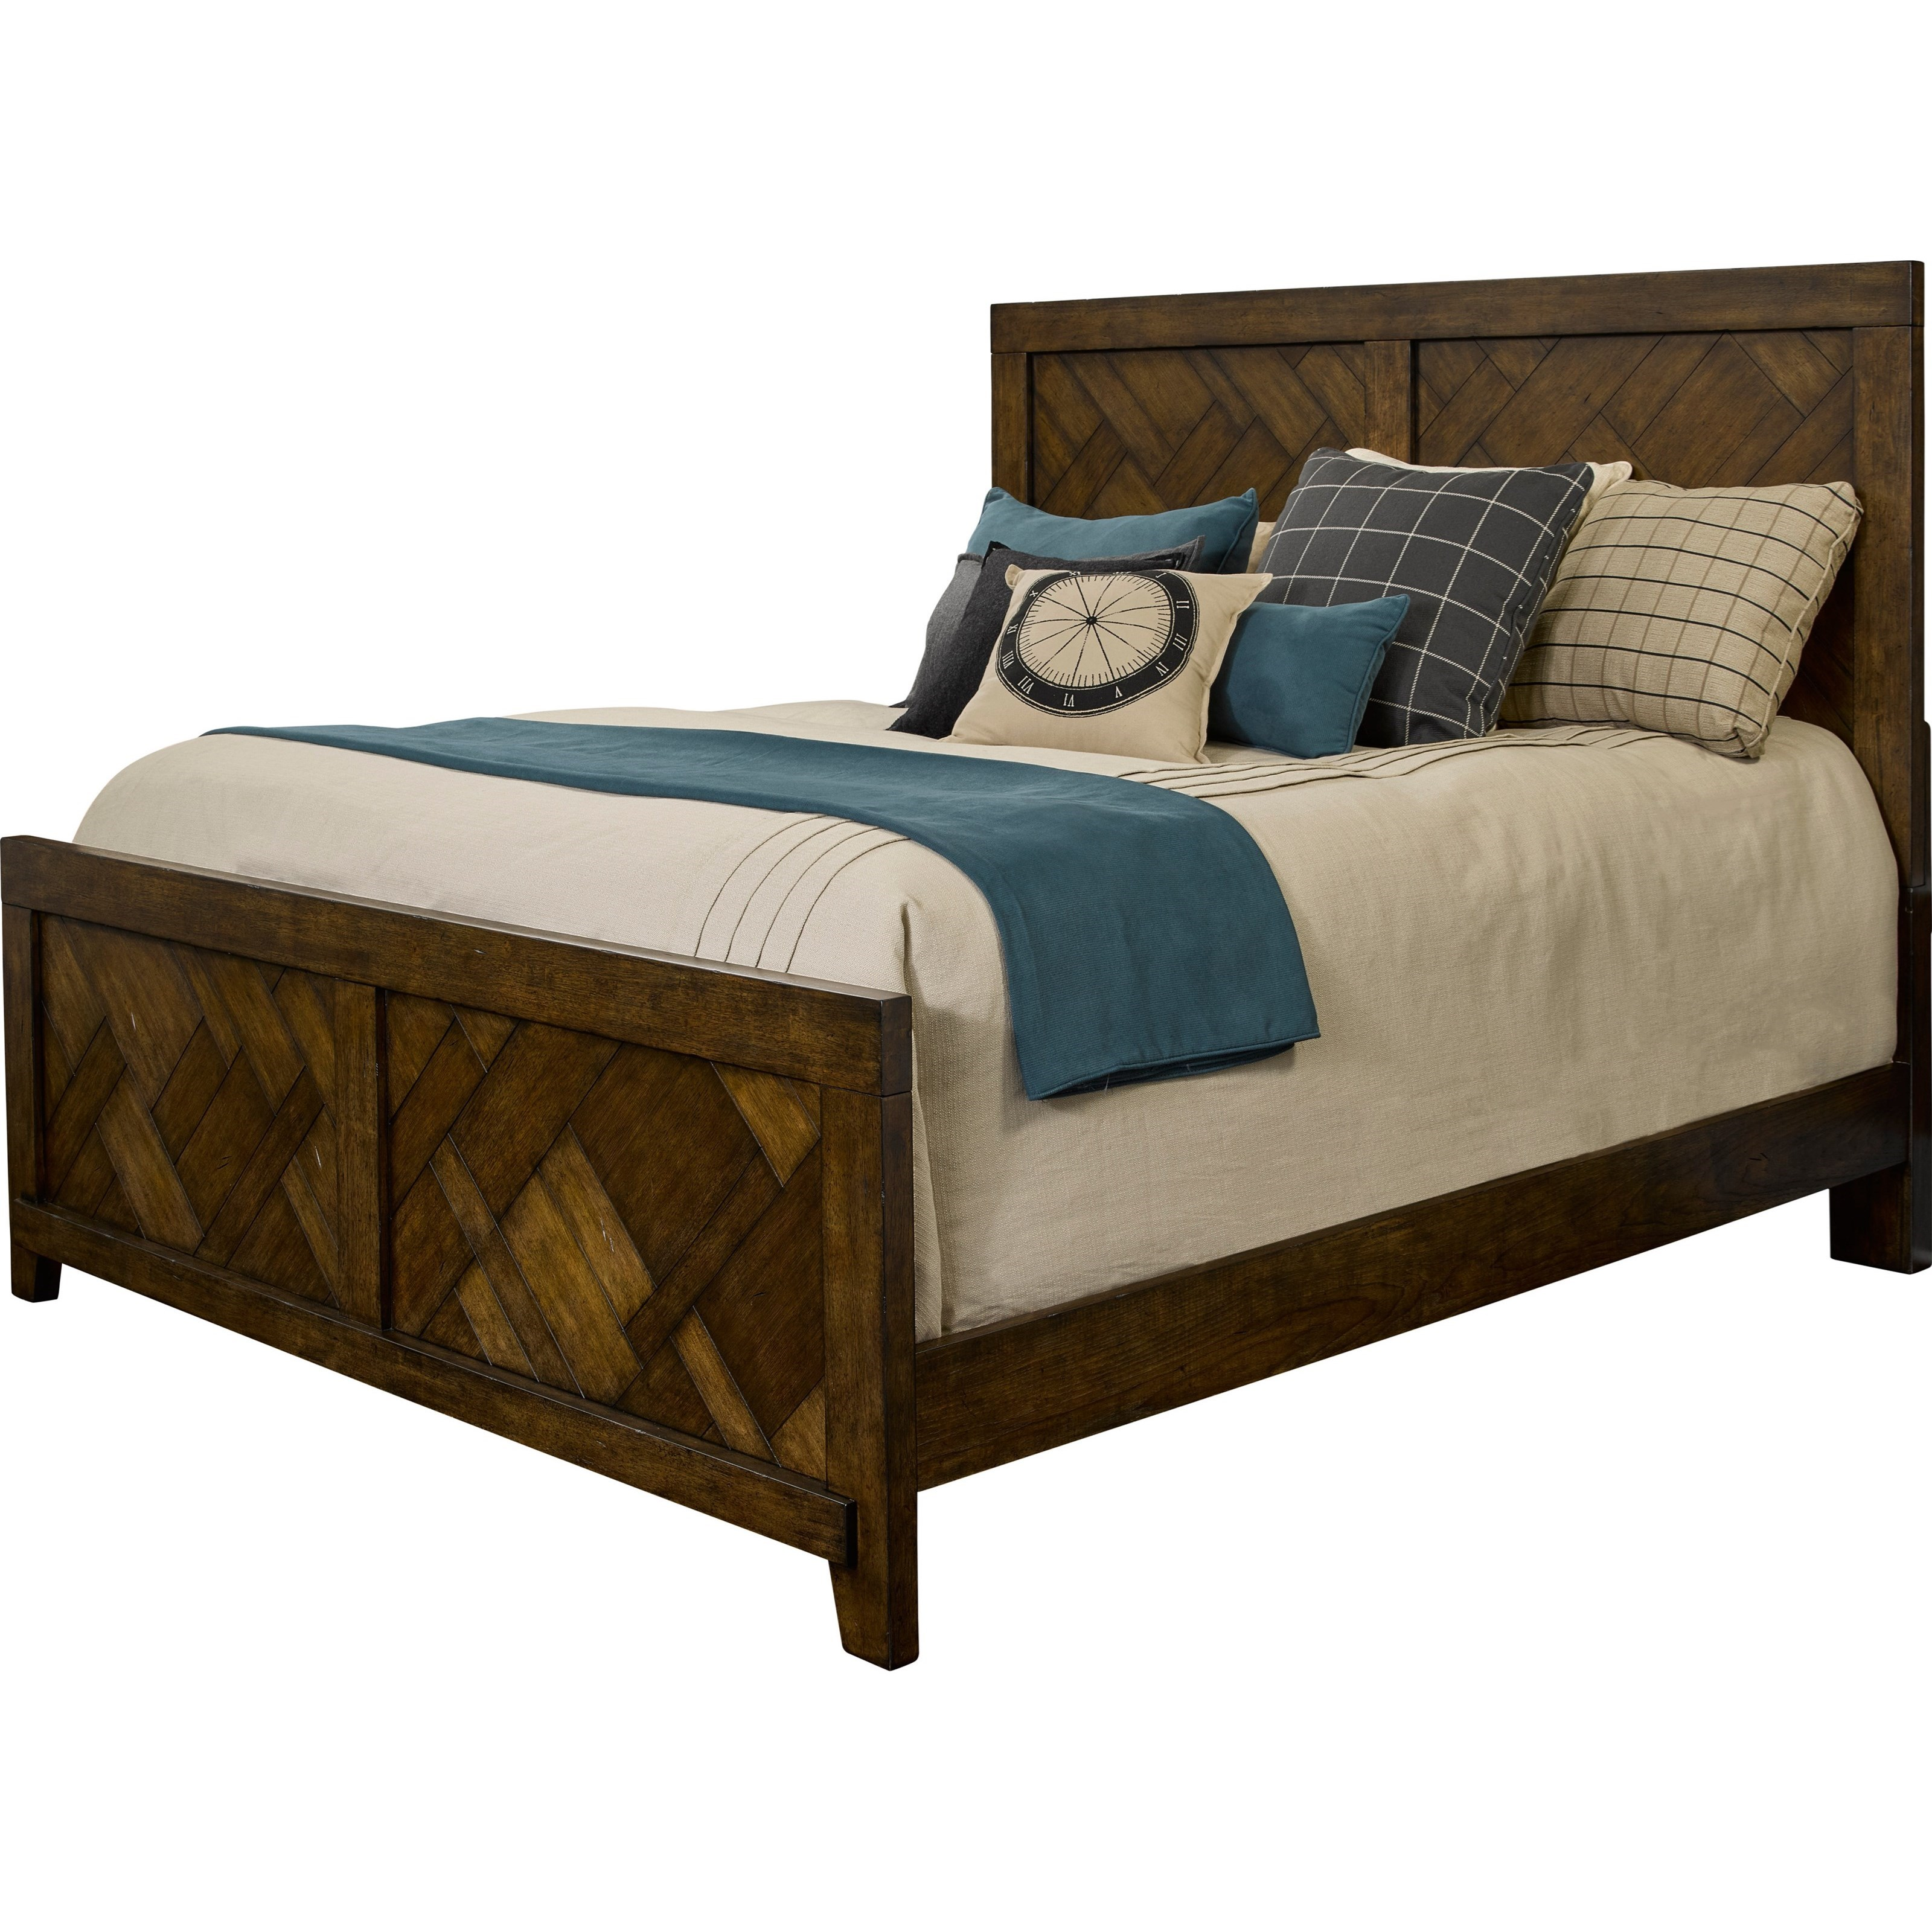 Broyhill furniture pieceworks king panel bed with rustic for Broyhill sofa bed